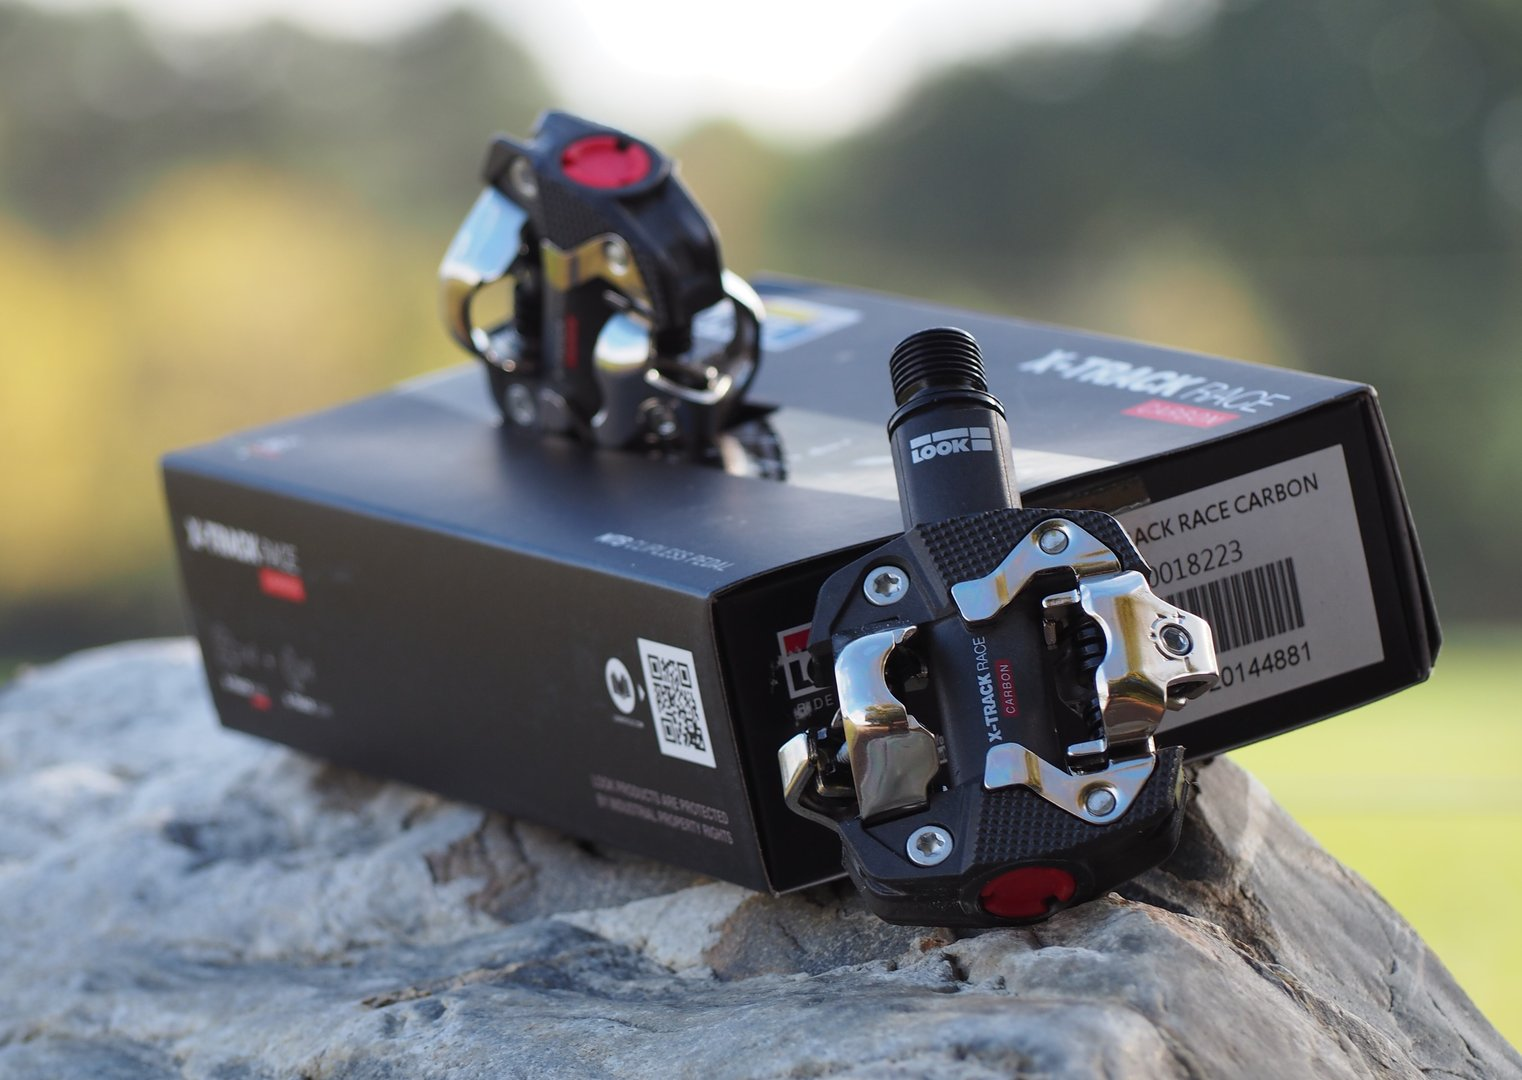 Look - X-Track Race Carbon | bike pedal